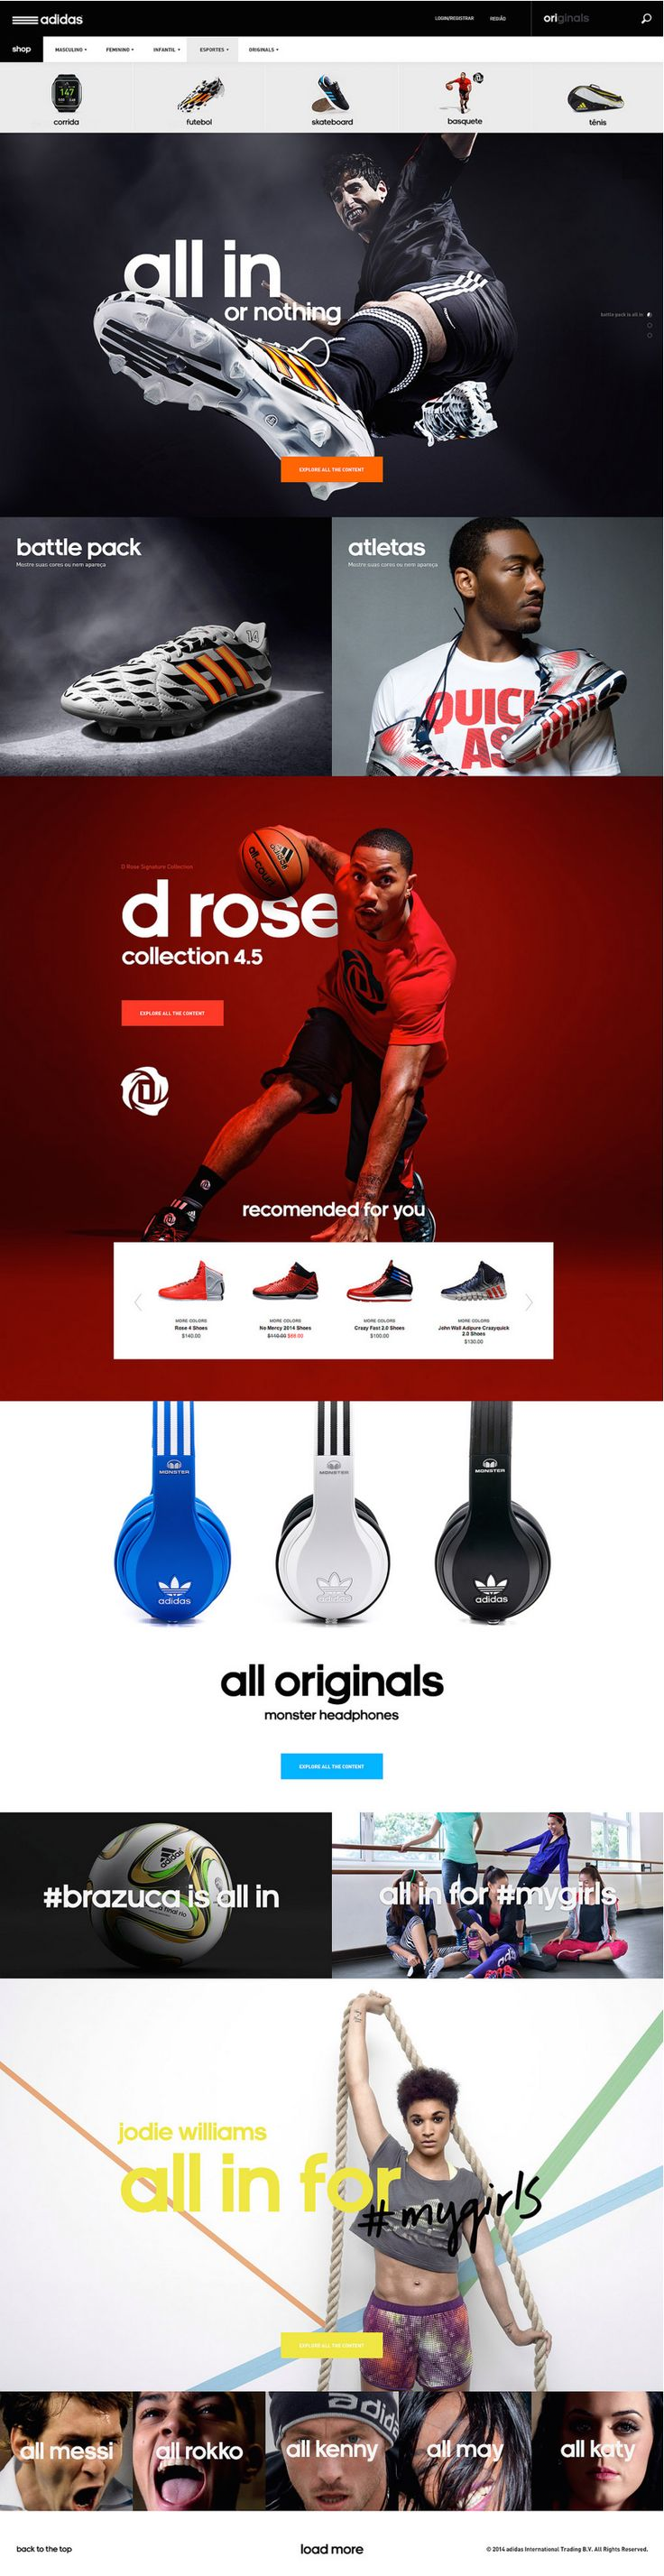 Adidas #webdesign #website #inspiration #layout